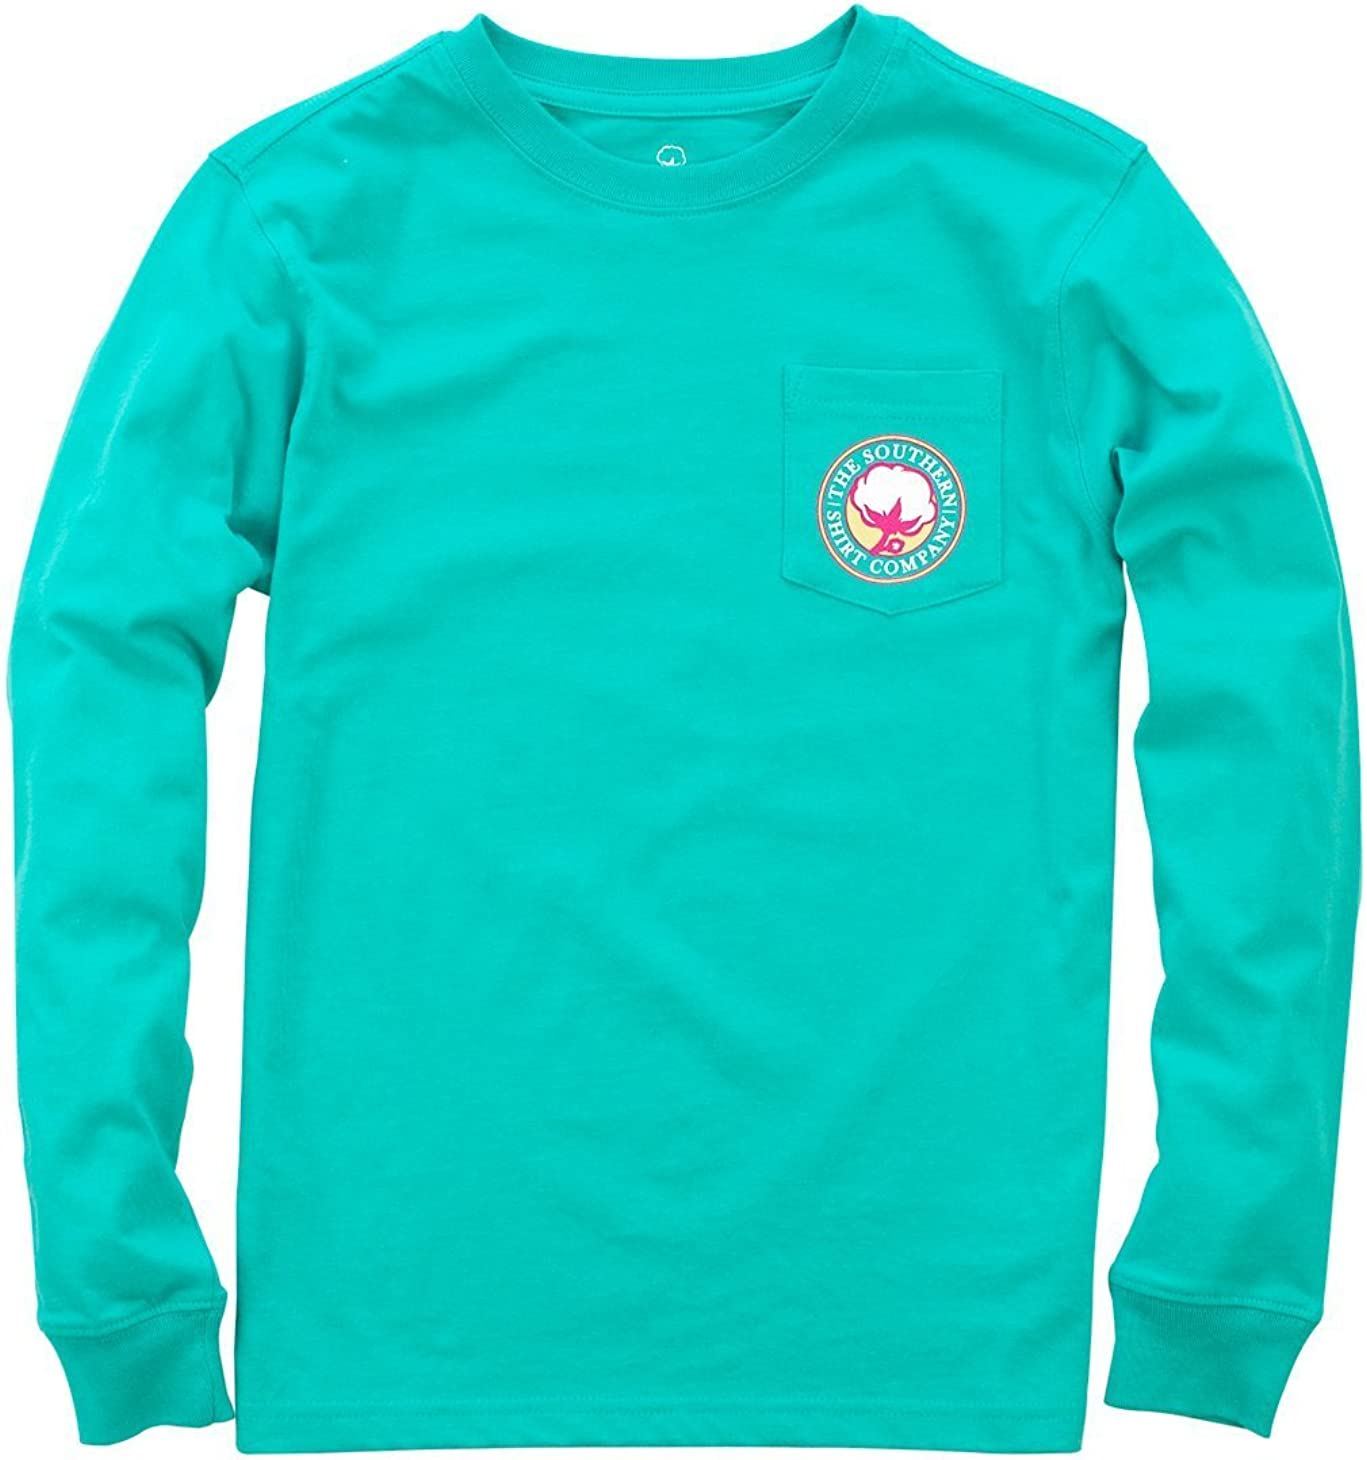 Southern Shirt Company Youth Smitten Mitten Long Sleeve Tee